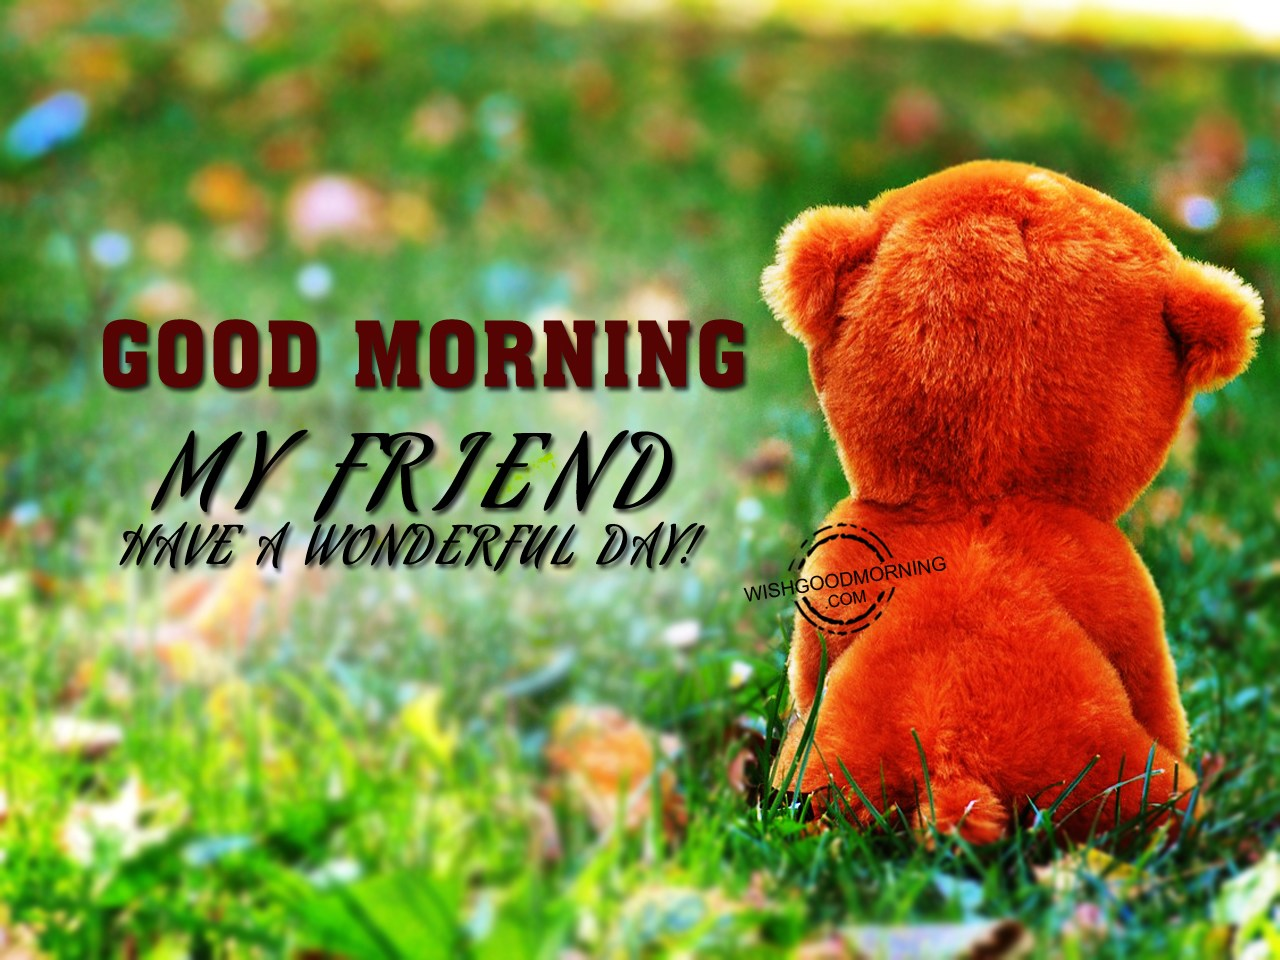 Good Morning Wishes For Friends - Good Morning Pictures